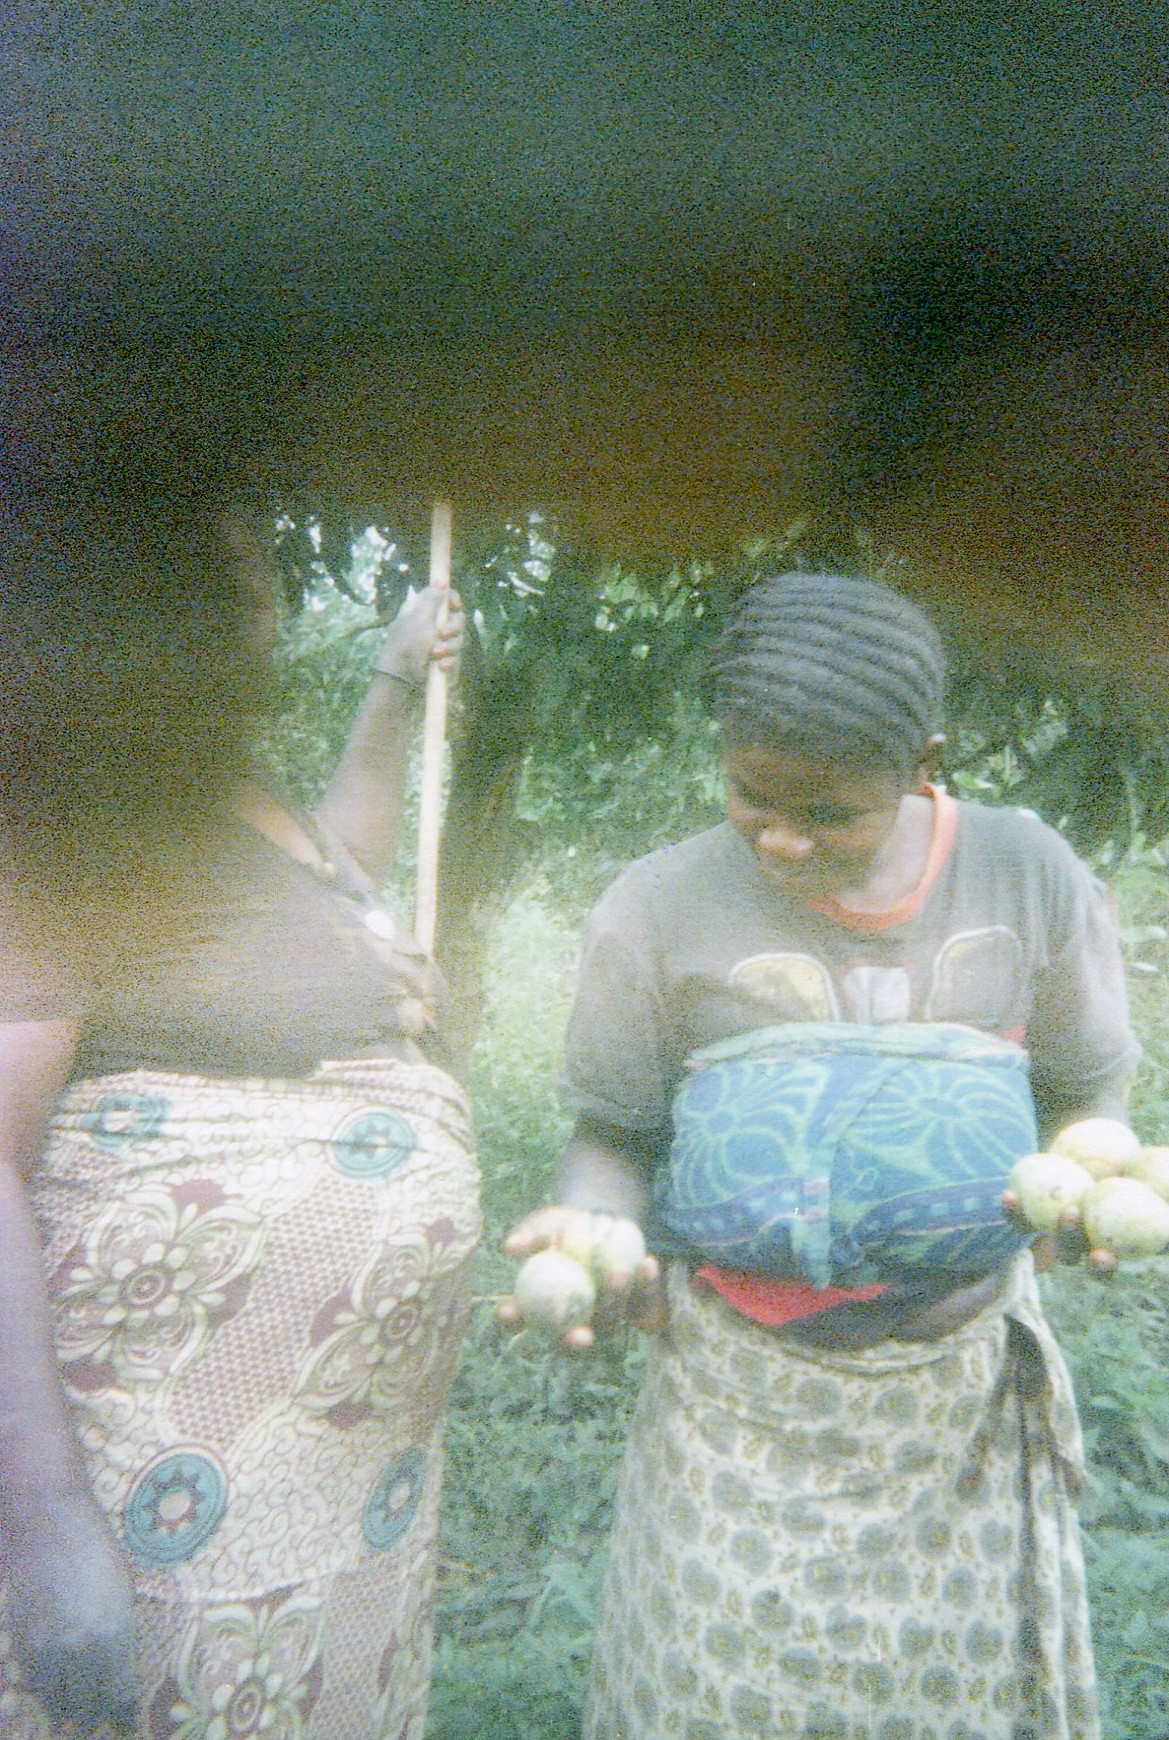 The women cook the fruits in the bush to feed their families.